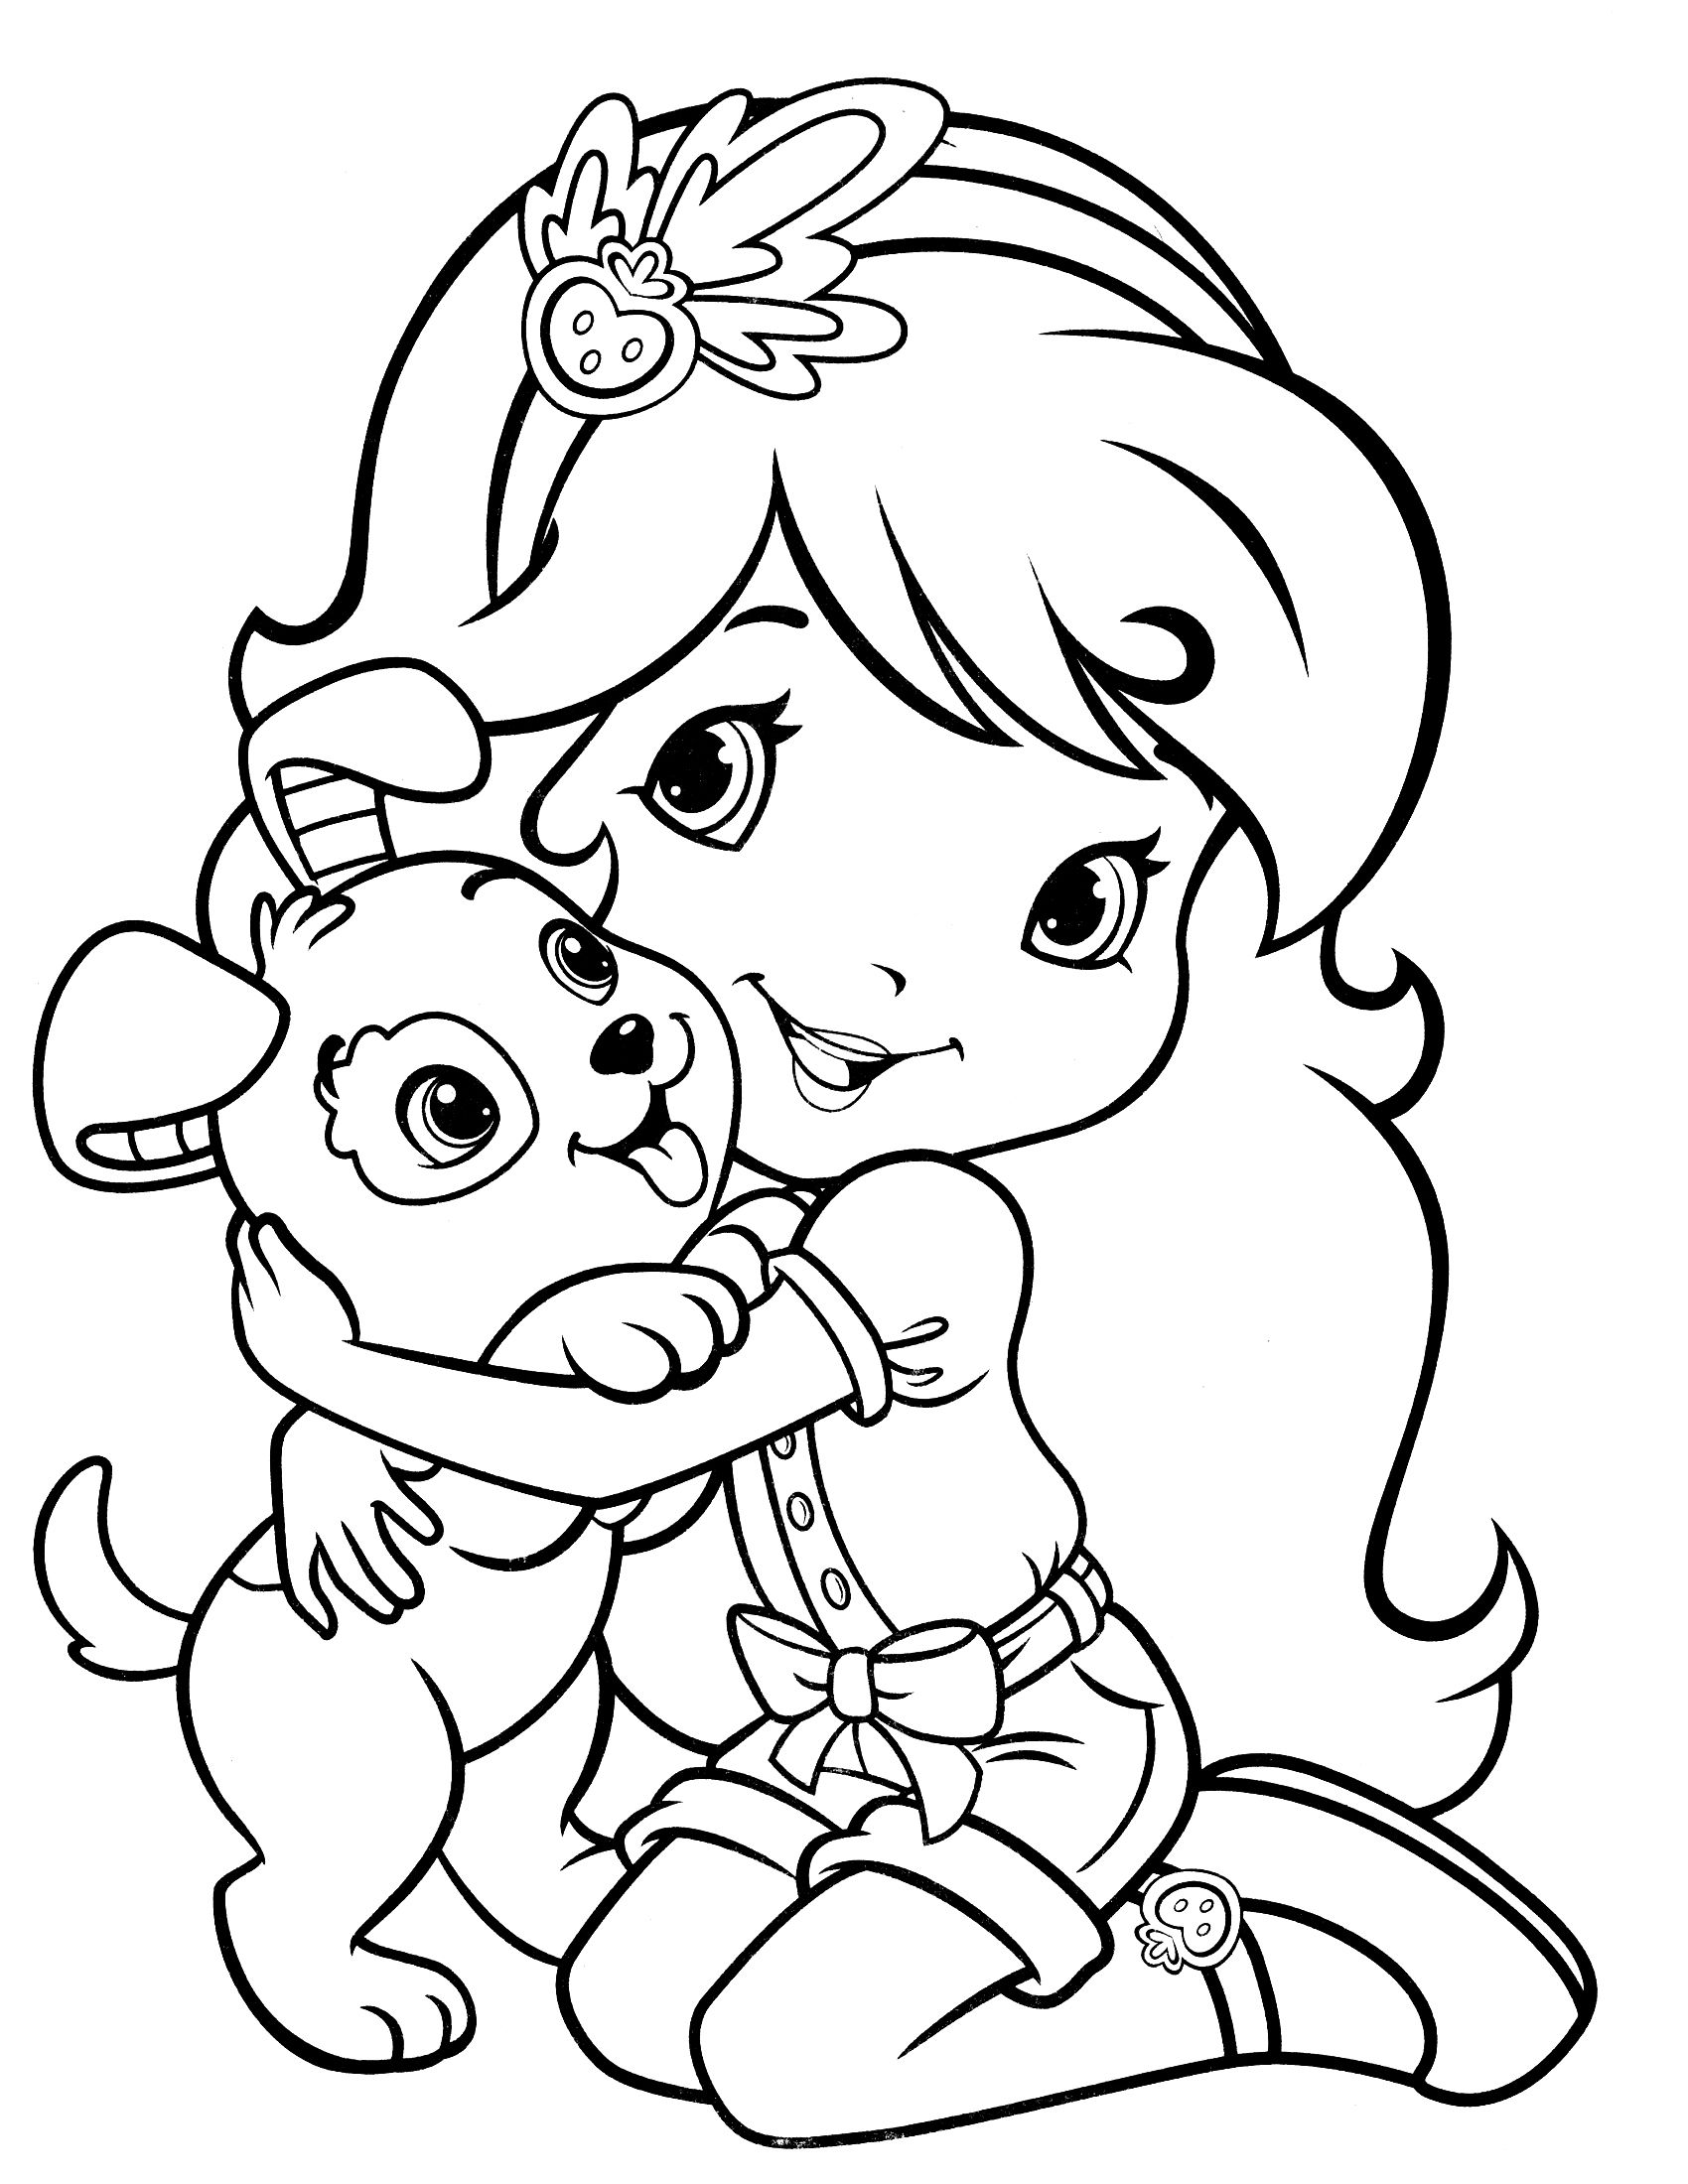 strawberry shortcake coloring page 73 jpg 1700 2200 coloring